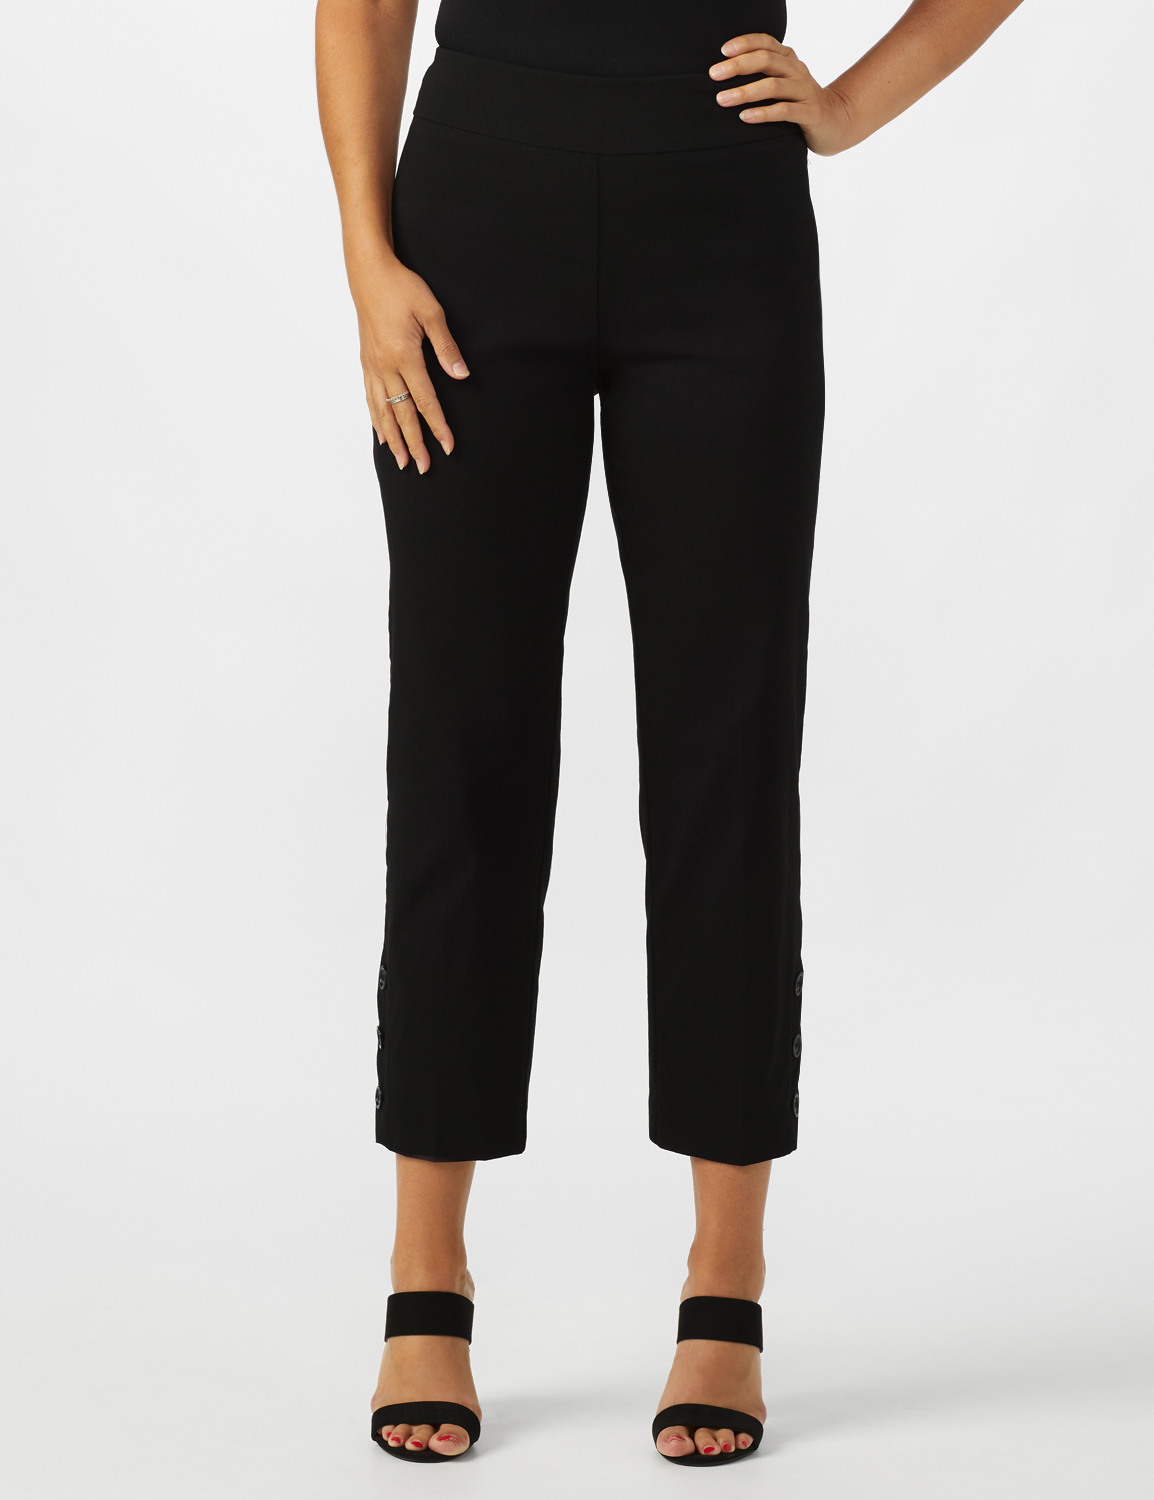 Superstretch Ankle Pants with Button Detail at the Hem -Black - Front